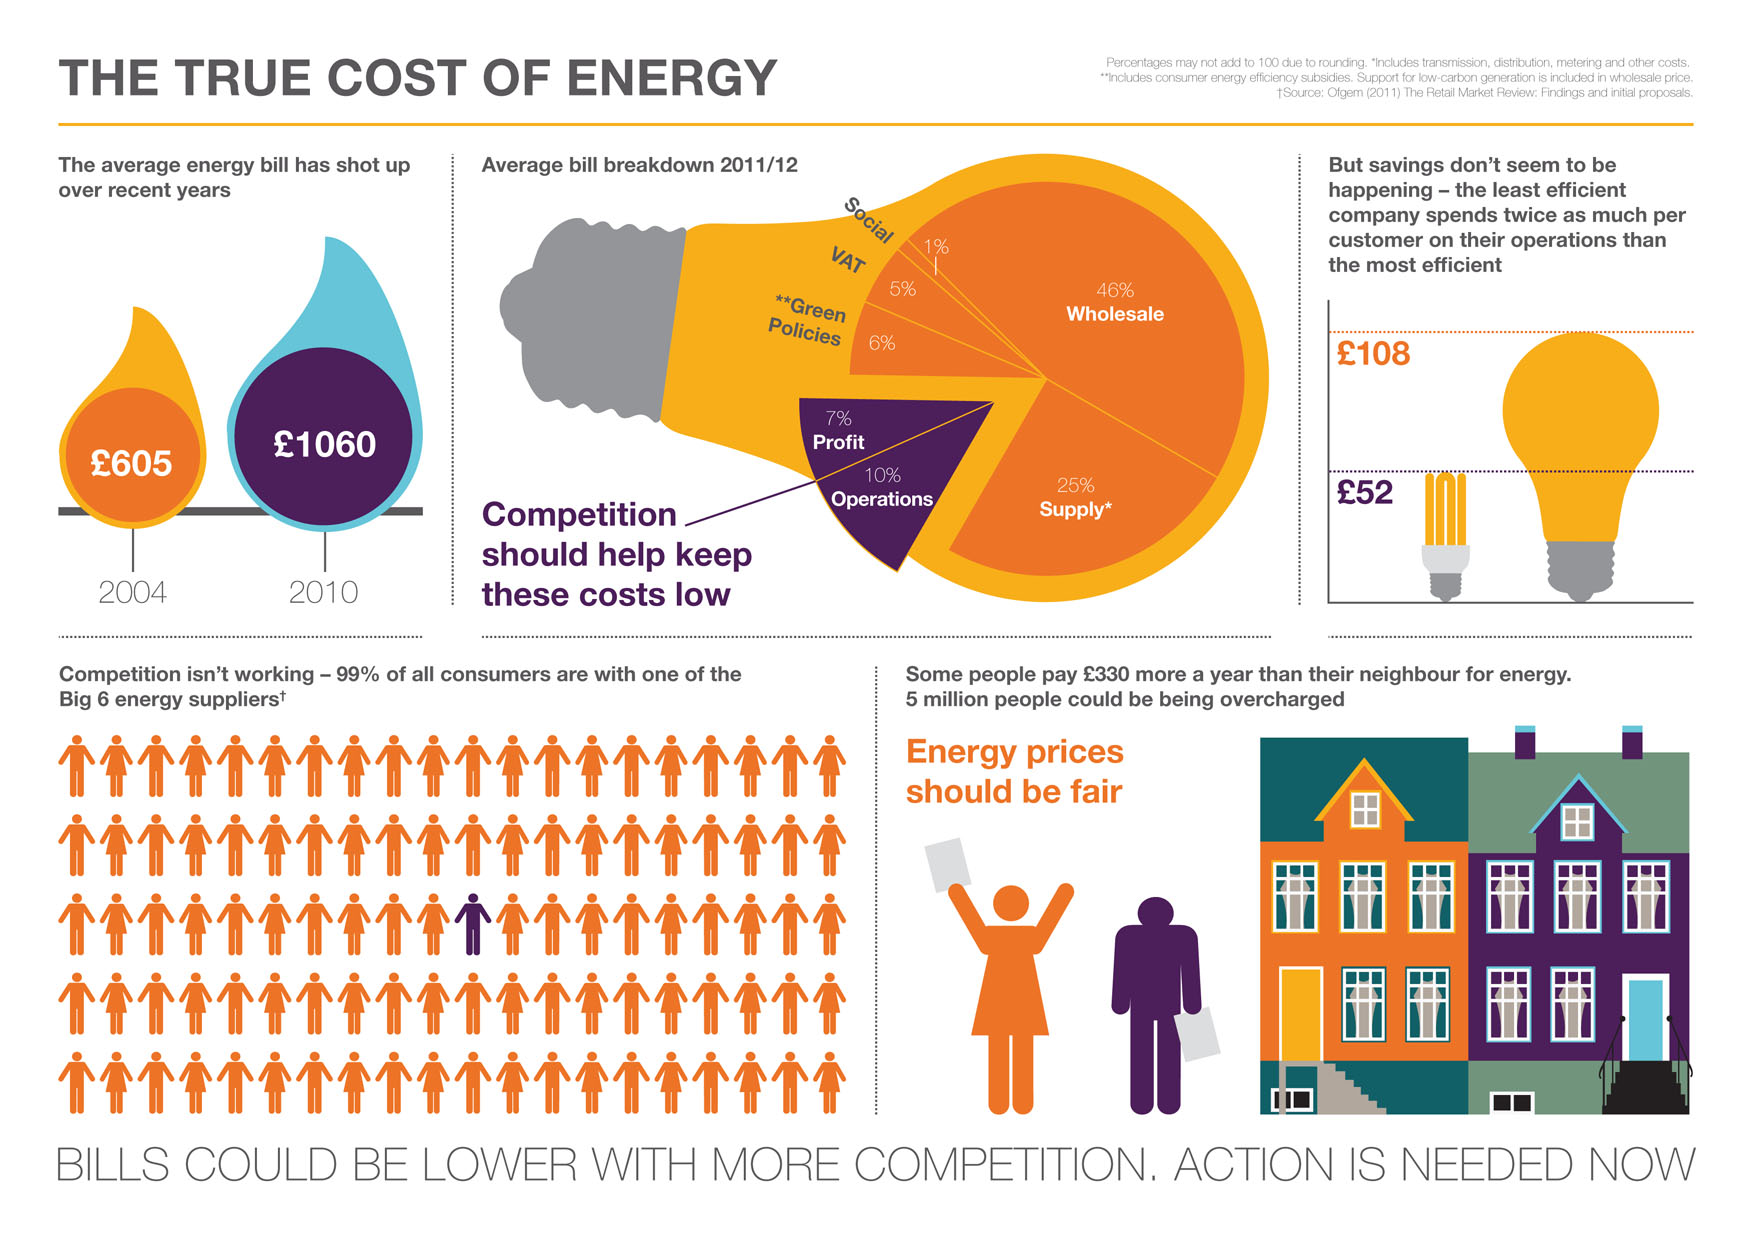 True cost of energy - why competition isn't working